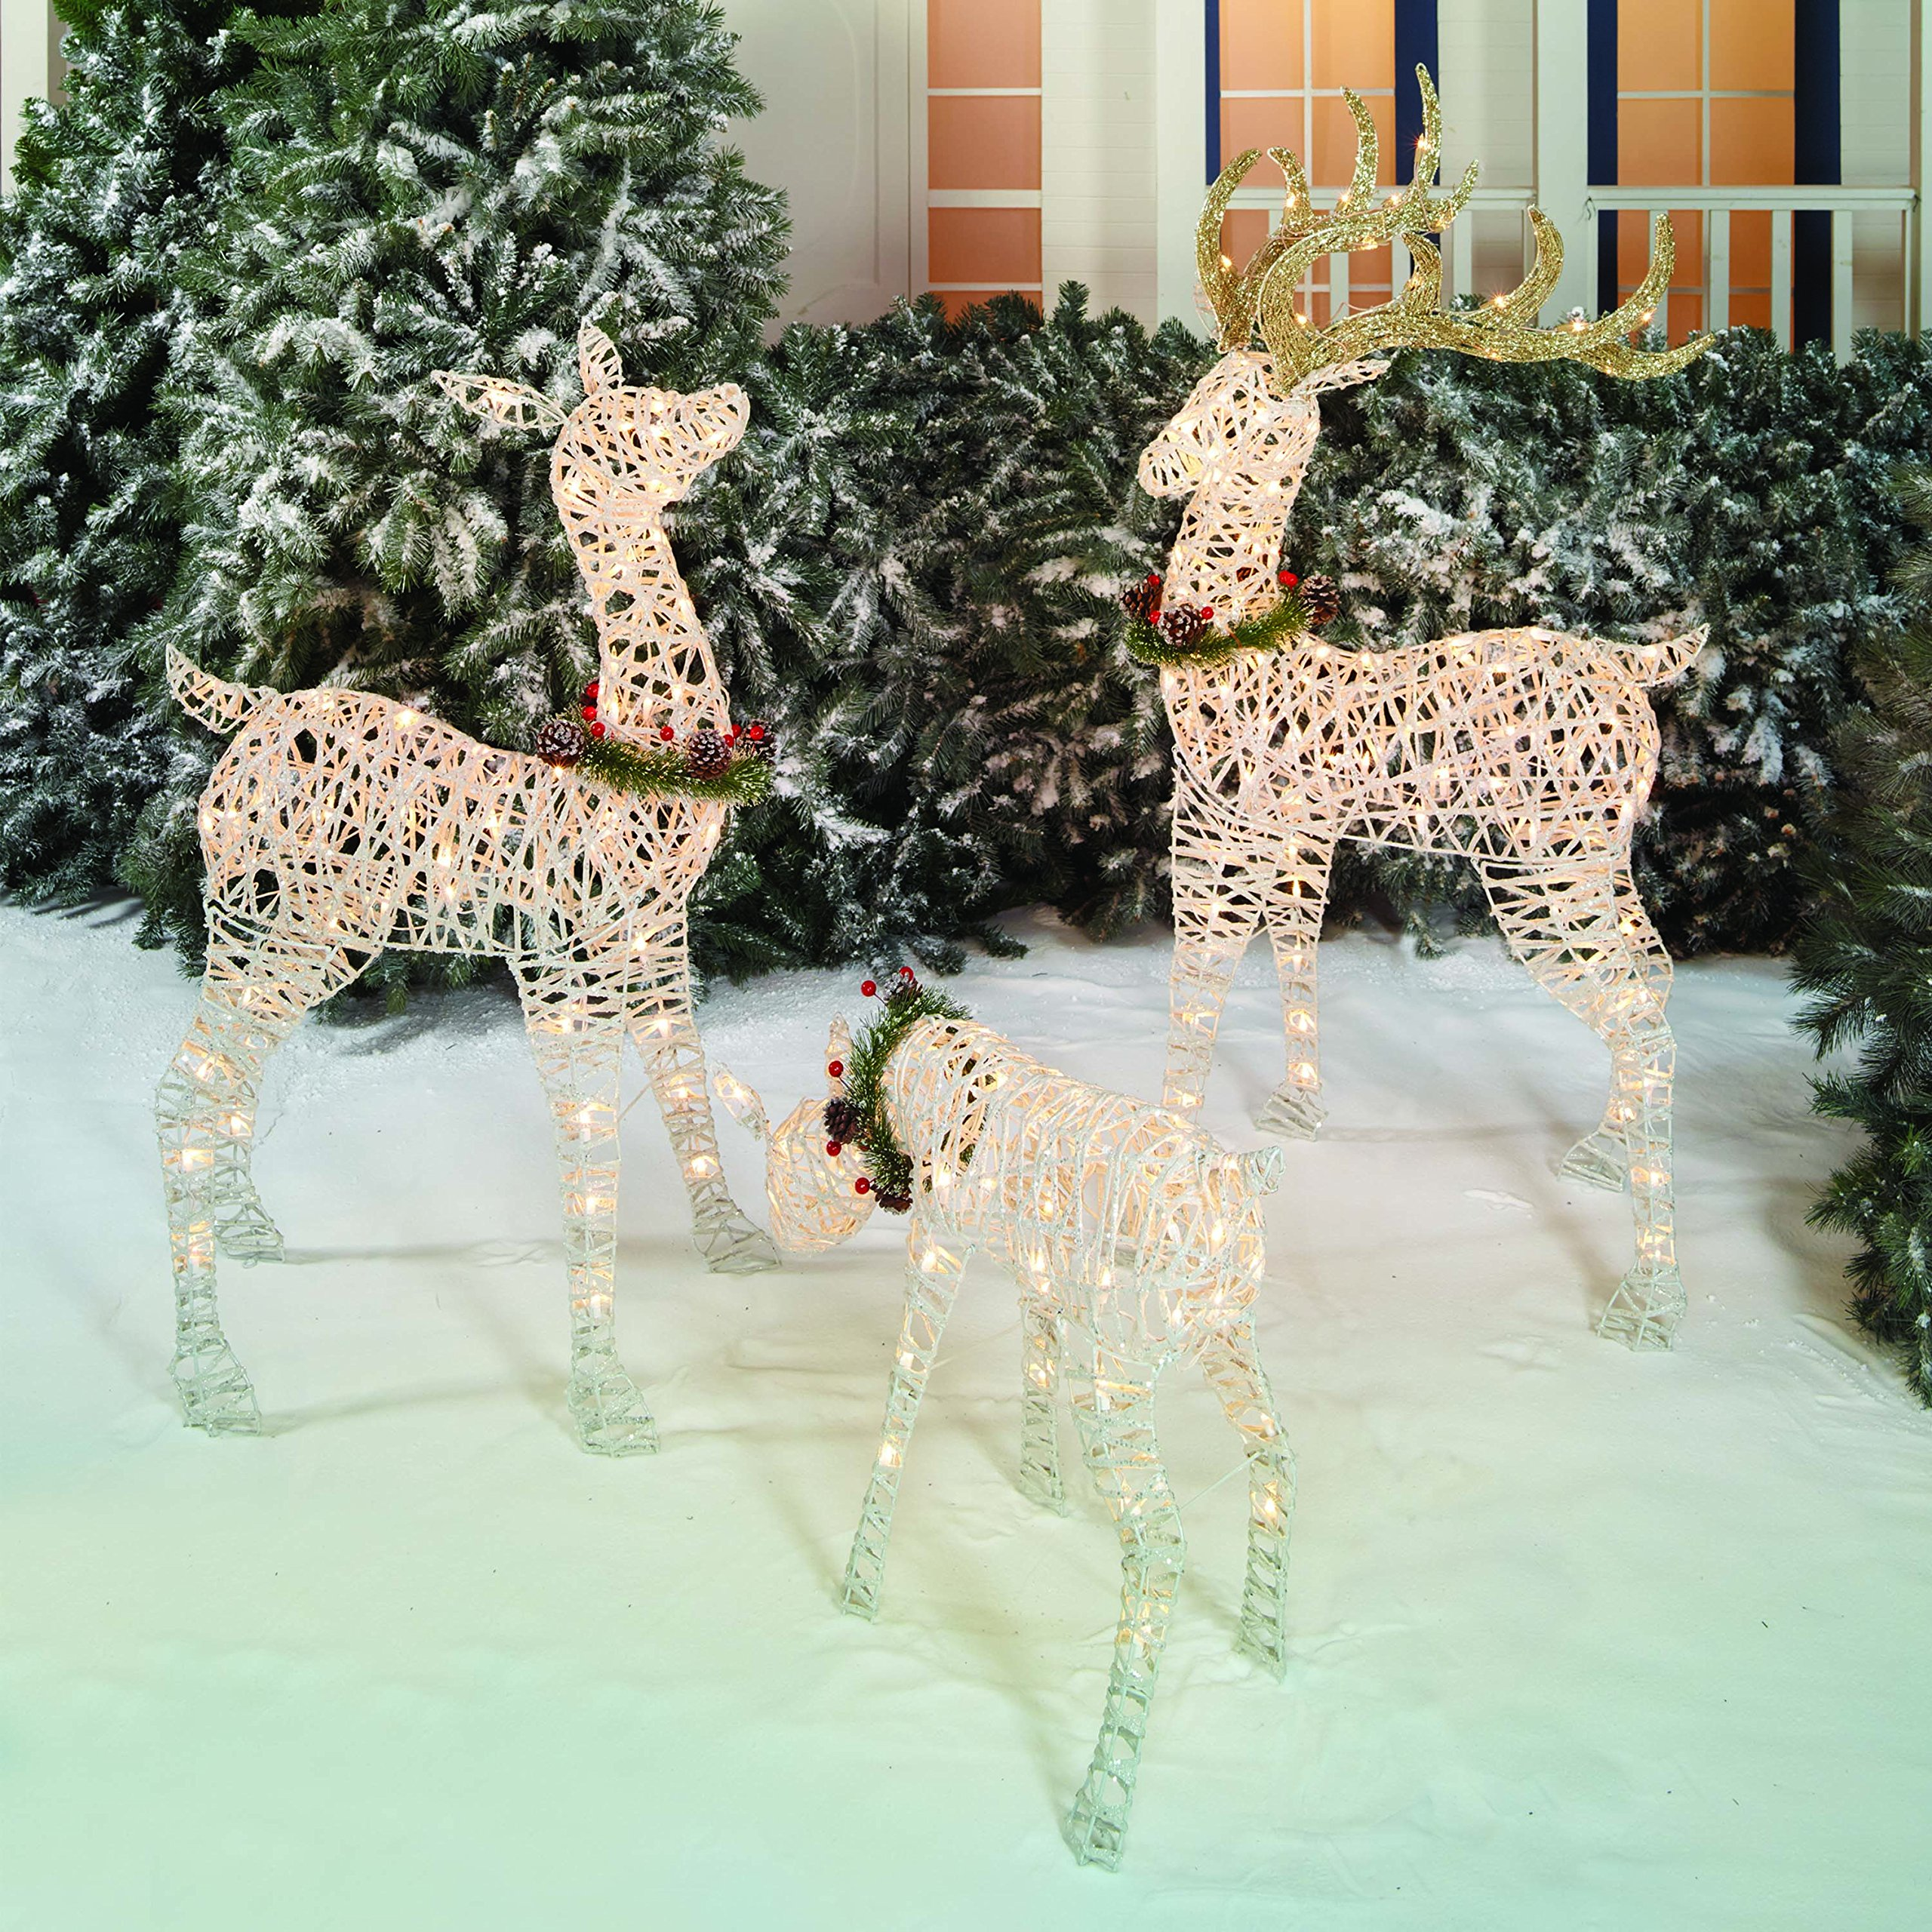 amazoncom outdoor christmas reindeer family 3 set 220 lights 52 buck 44 doe 28 fawn large deer family for indoor or outdoor winter holiday lawn